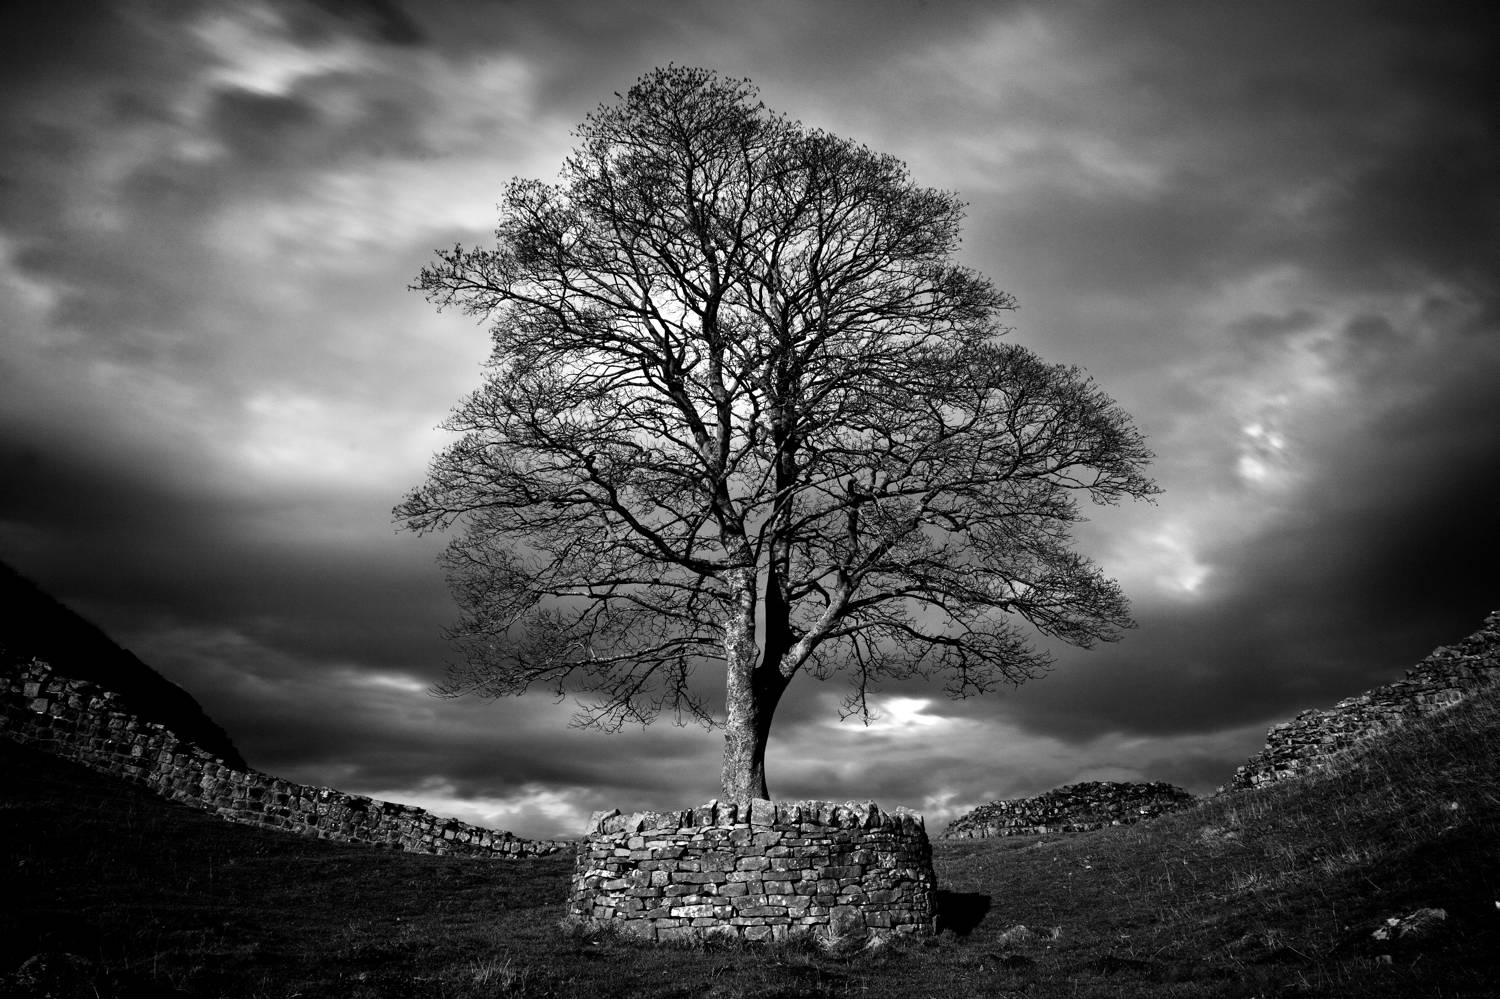 Sell fine art photography online, like this black and white image of a huge oak tree by Joshua Wyborn.